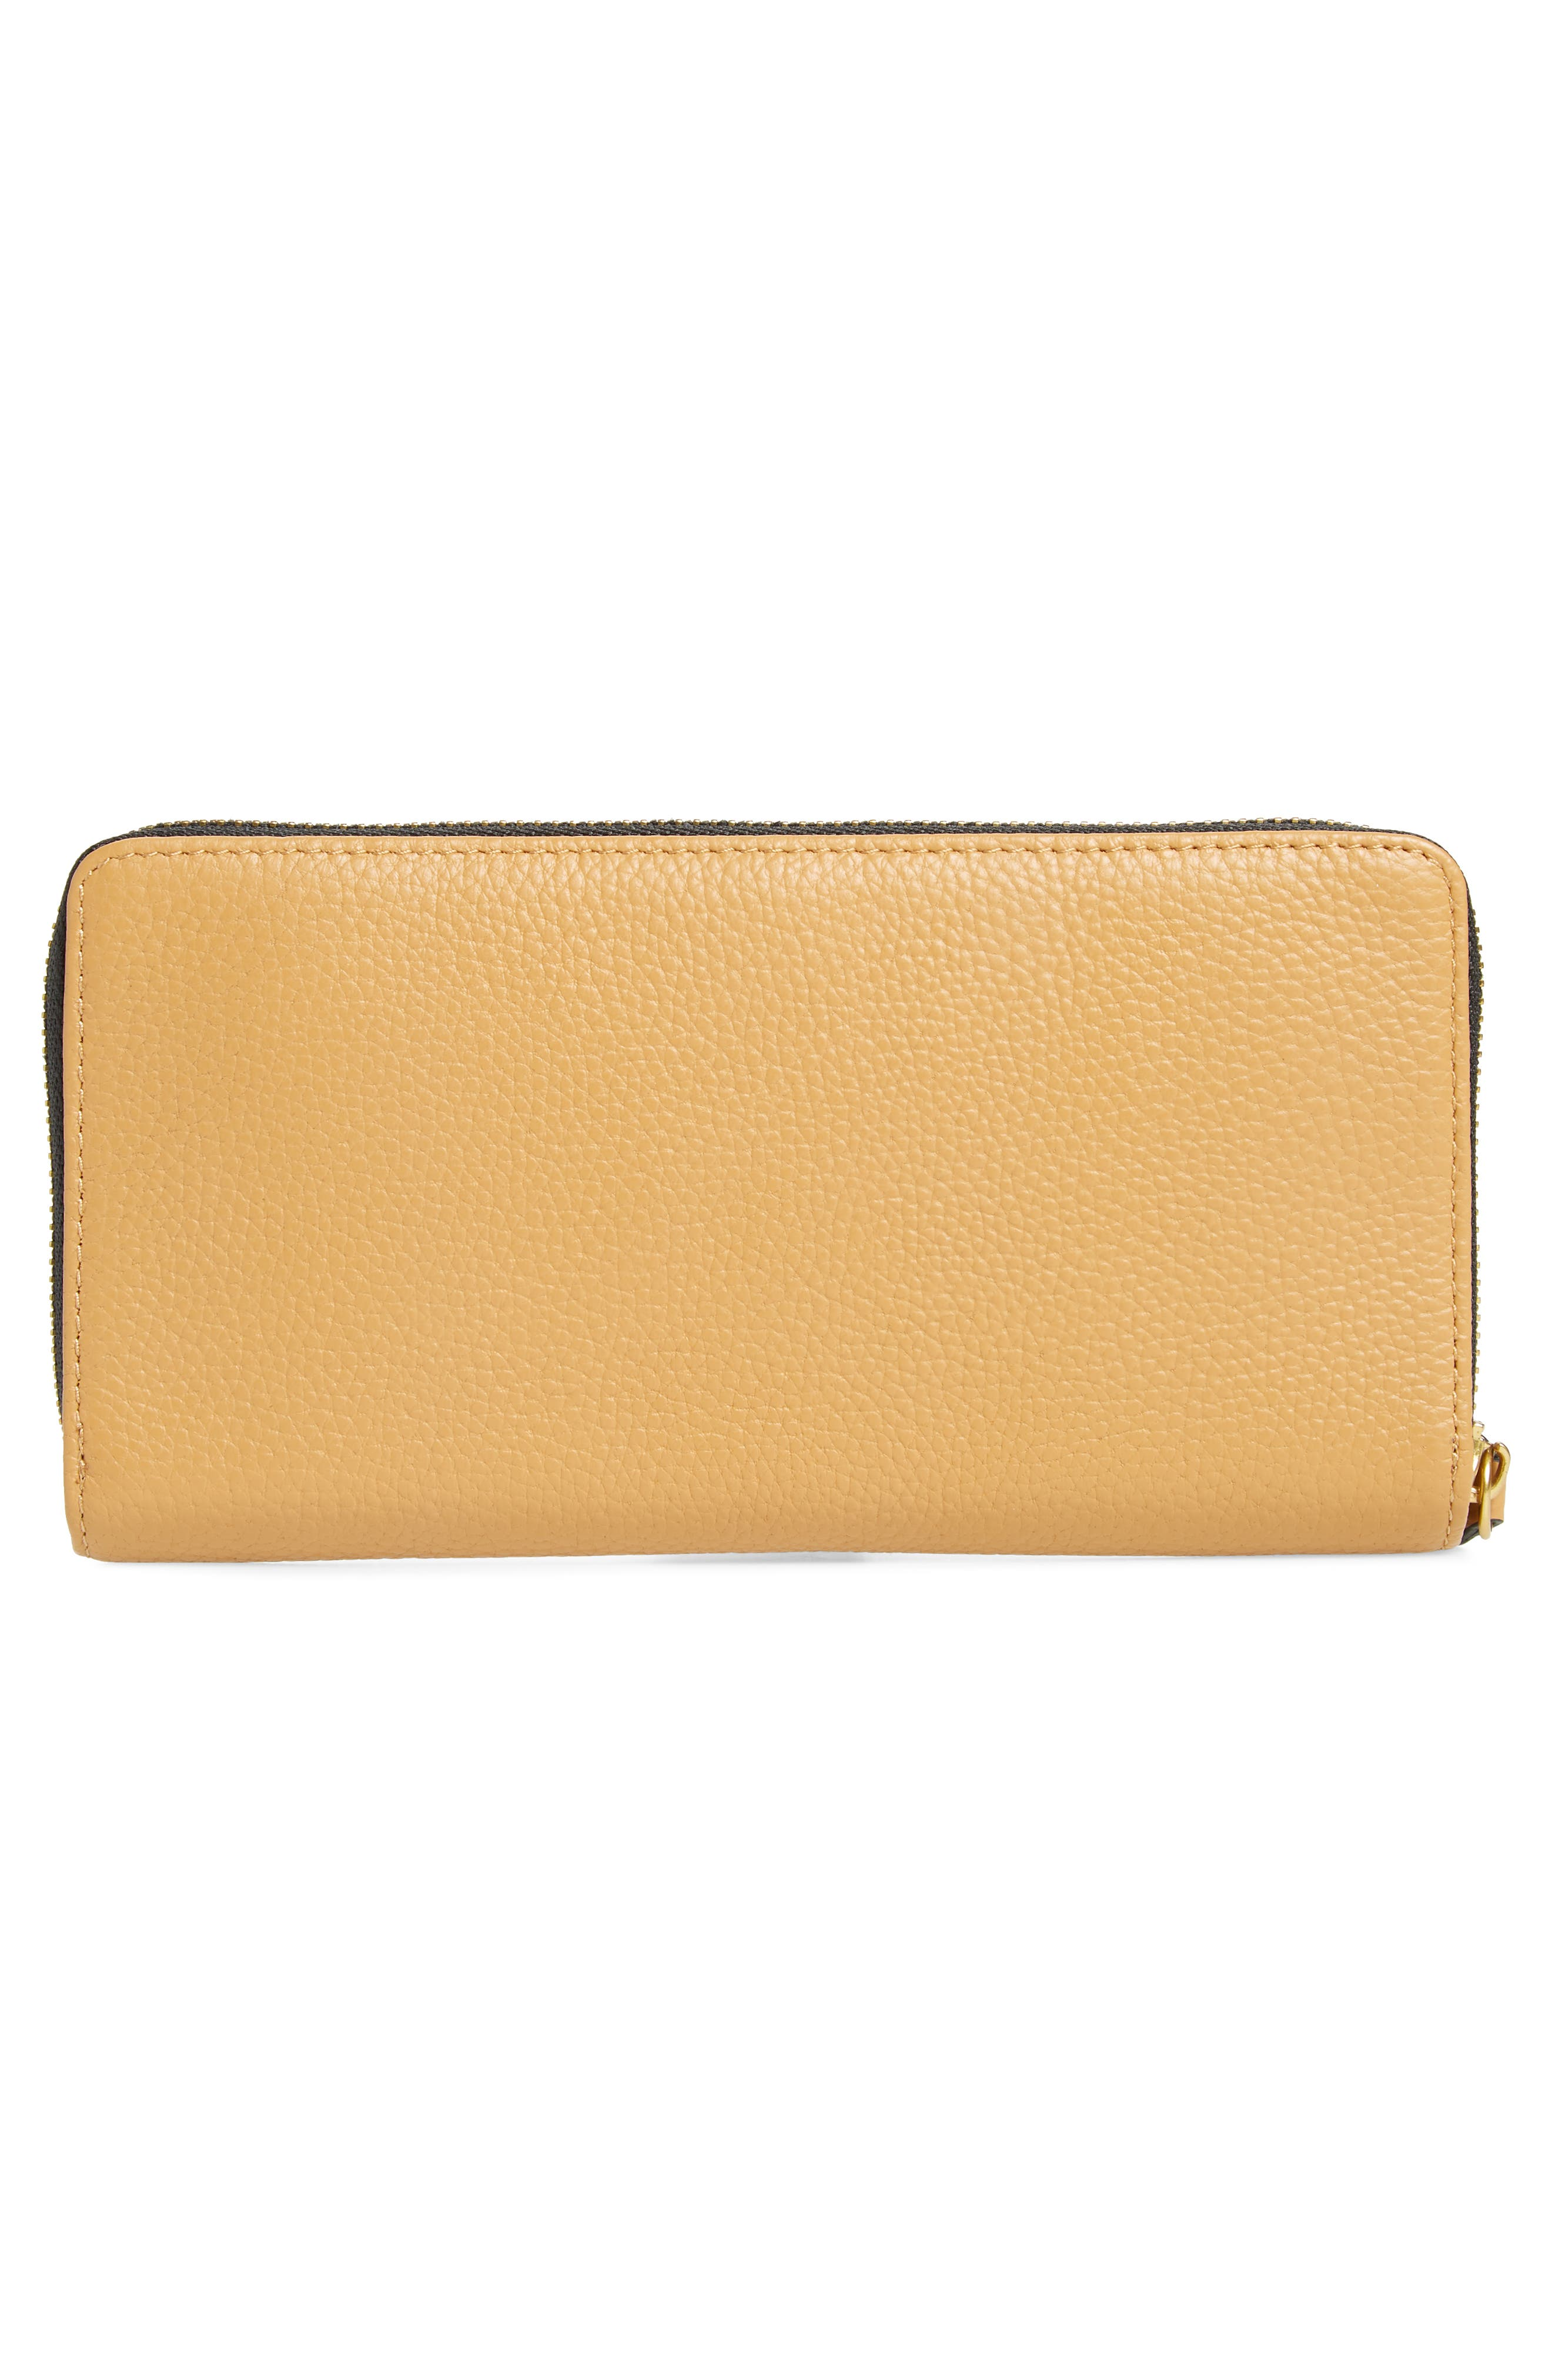 Zip Around Leather Wallet,                             Alternate thumbnail 11, color,